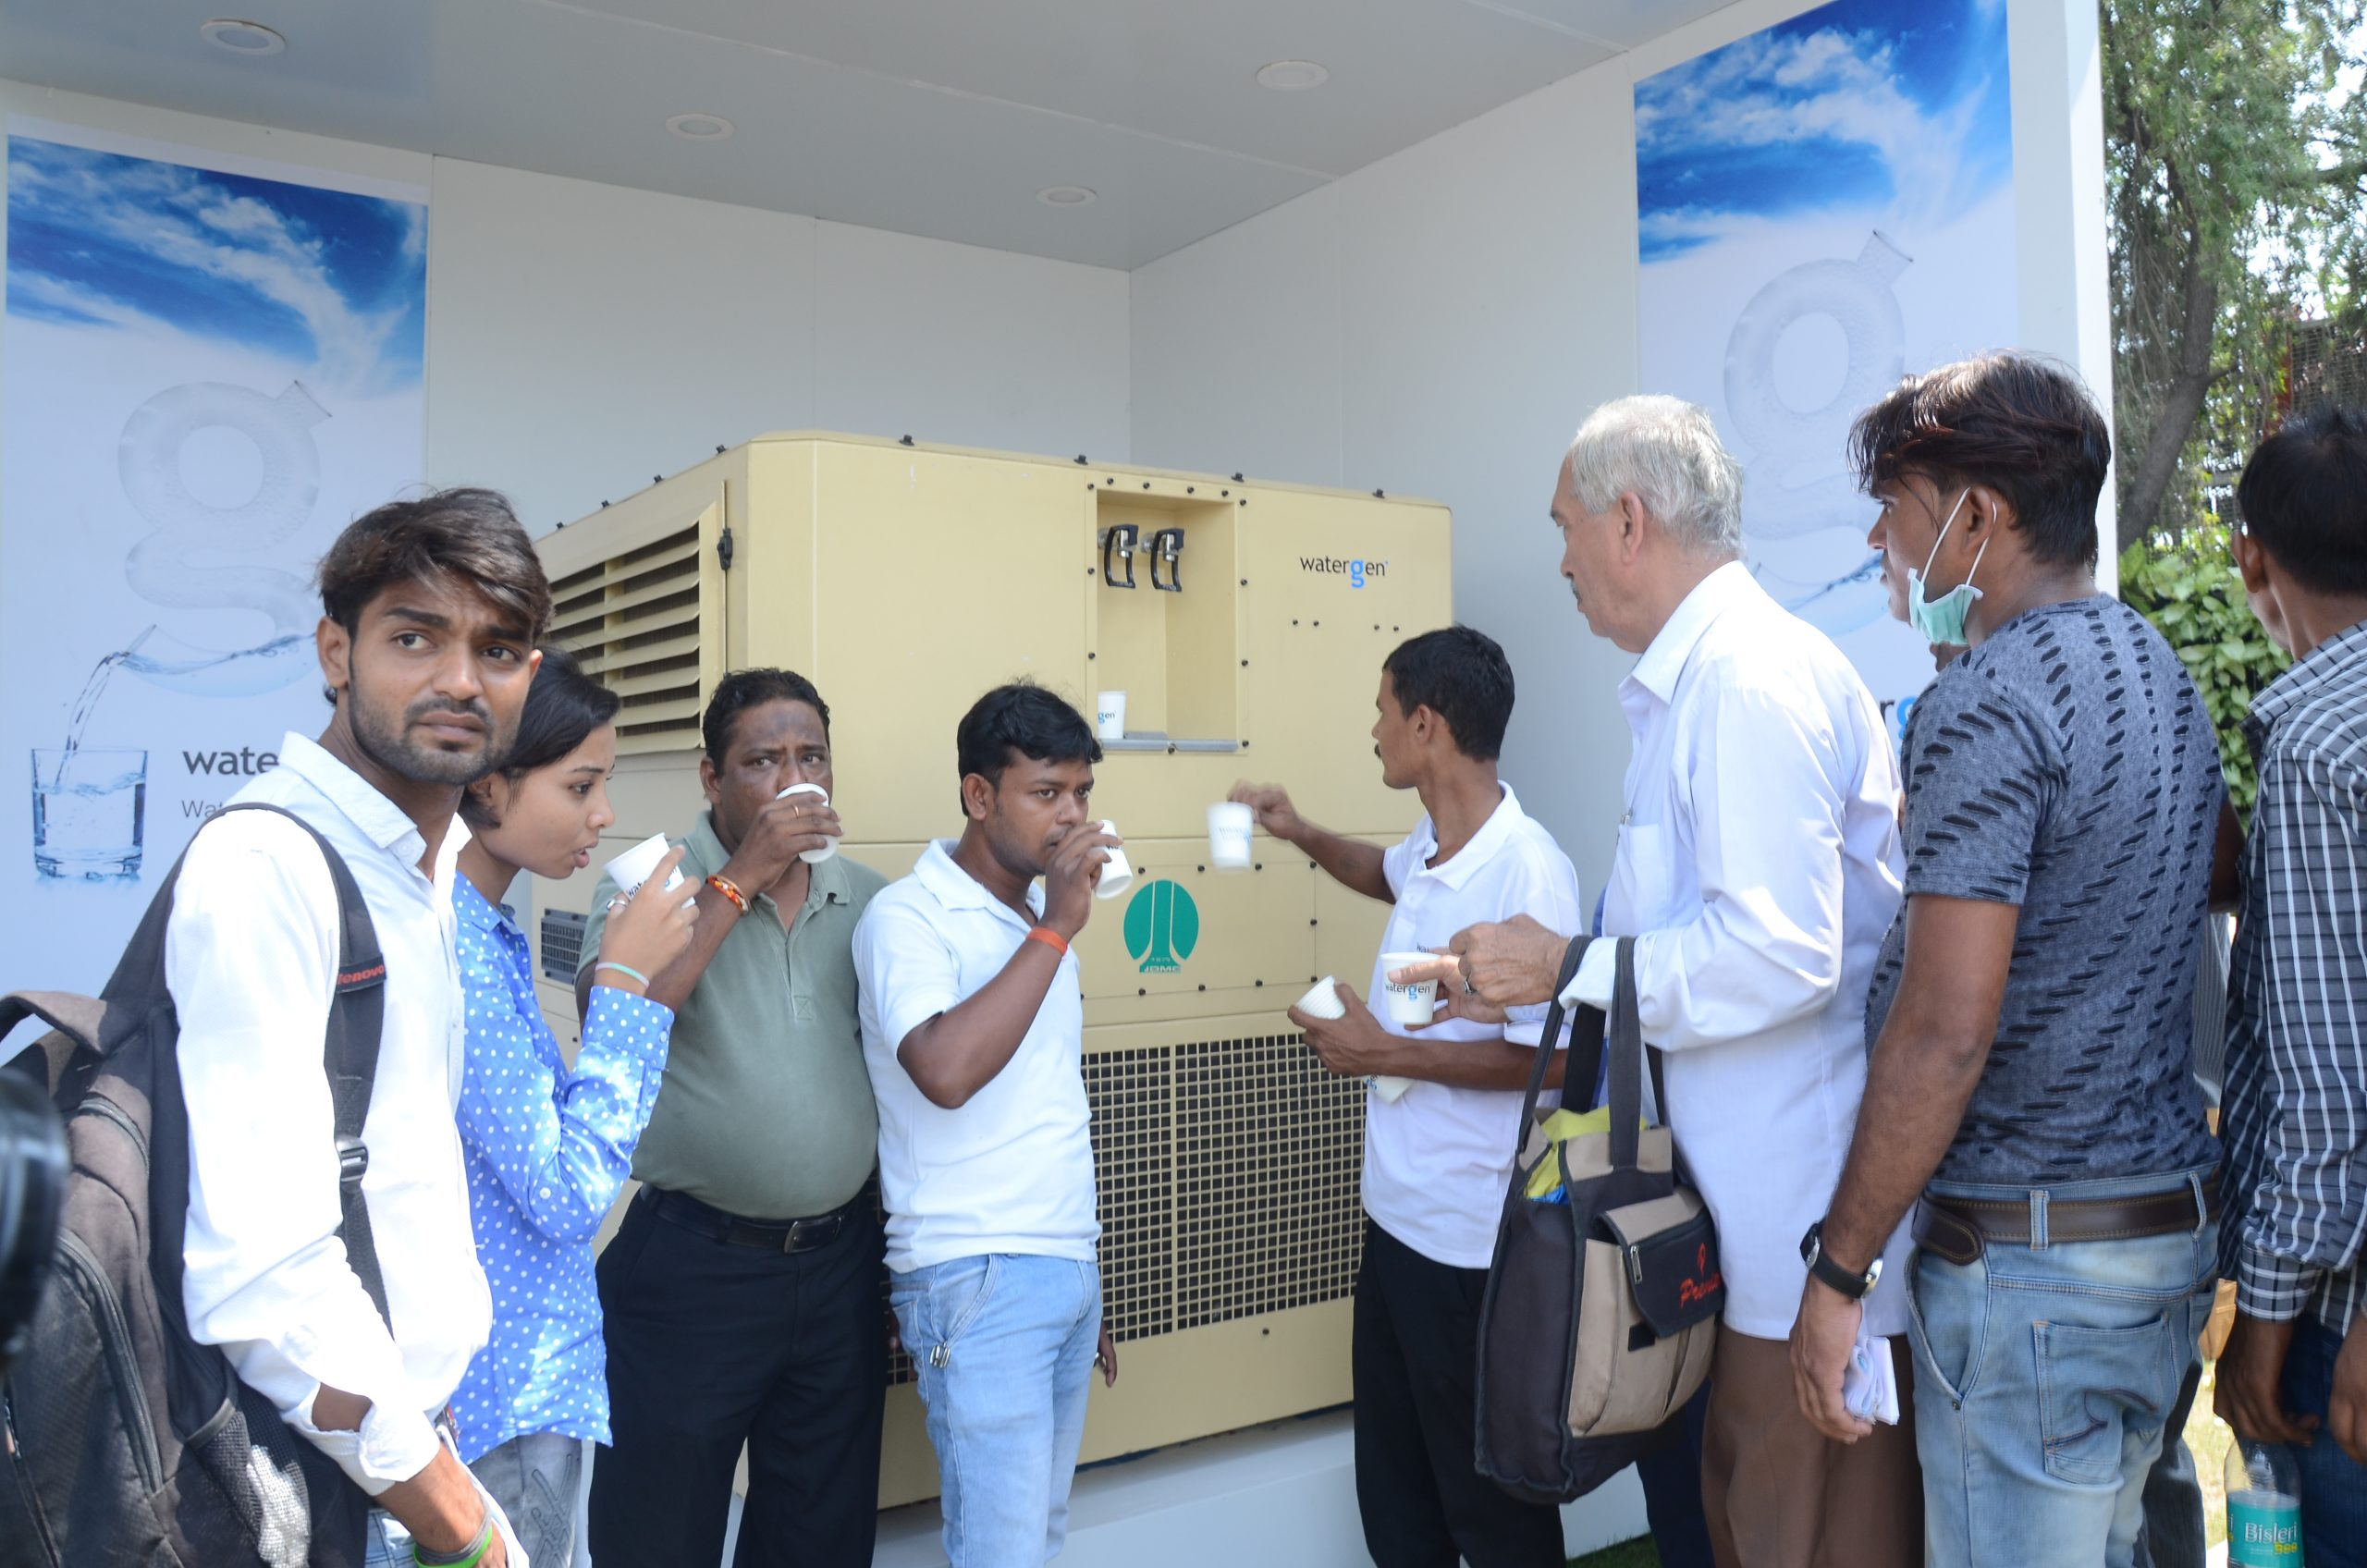 Watergen in collaboration with NDMC installed Air to Water ATM at Connaught Place